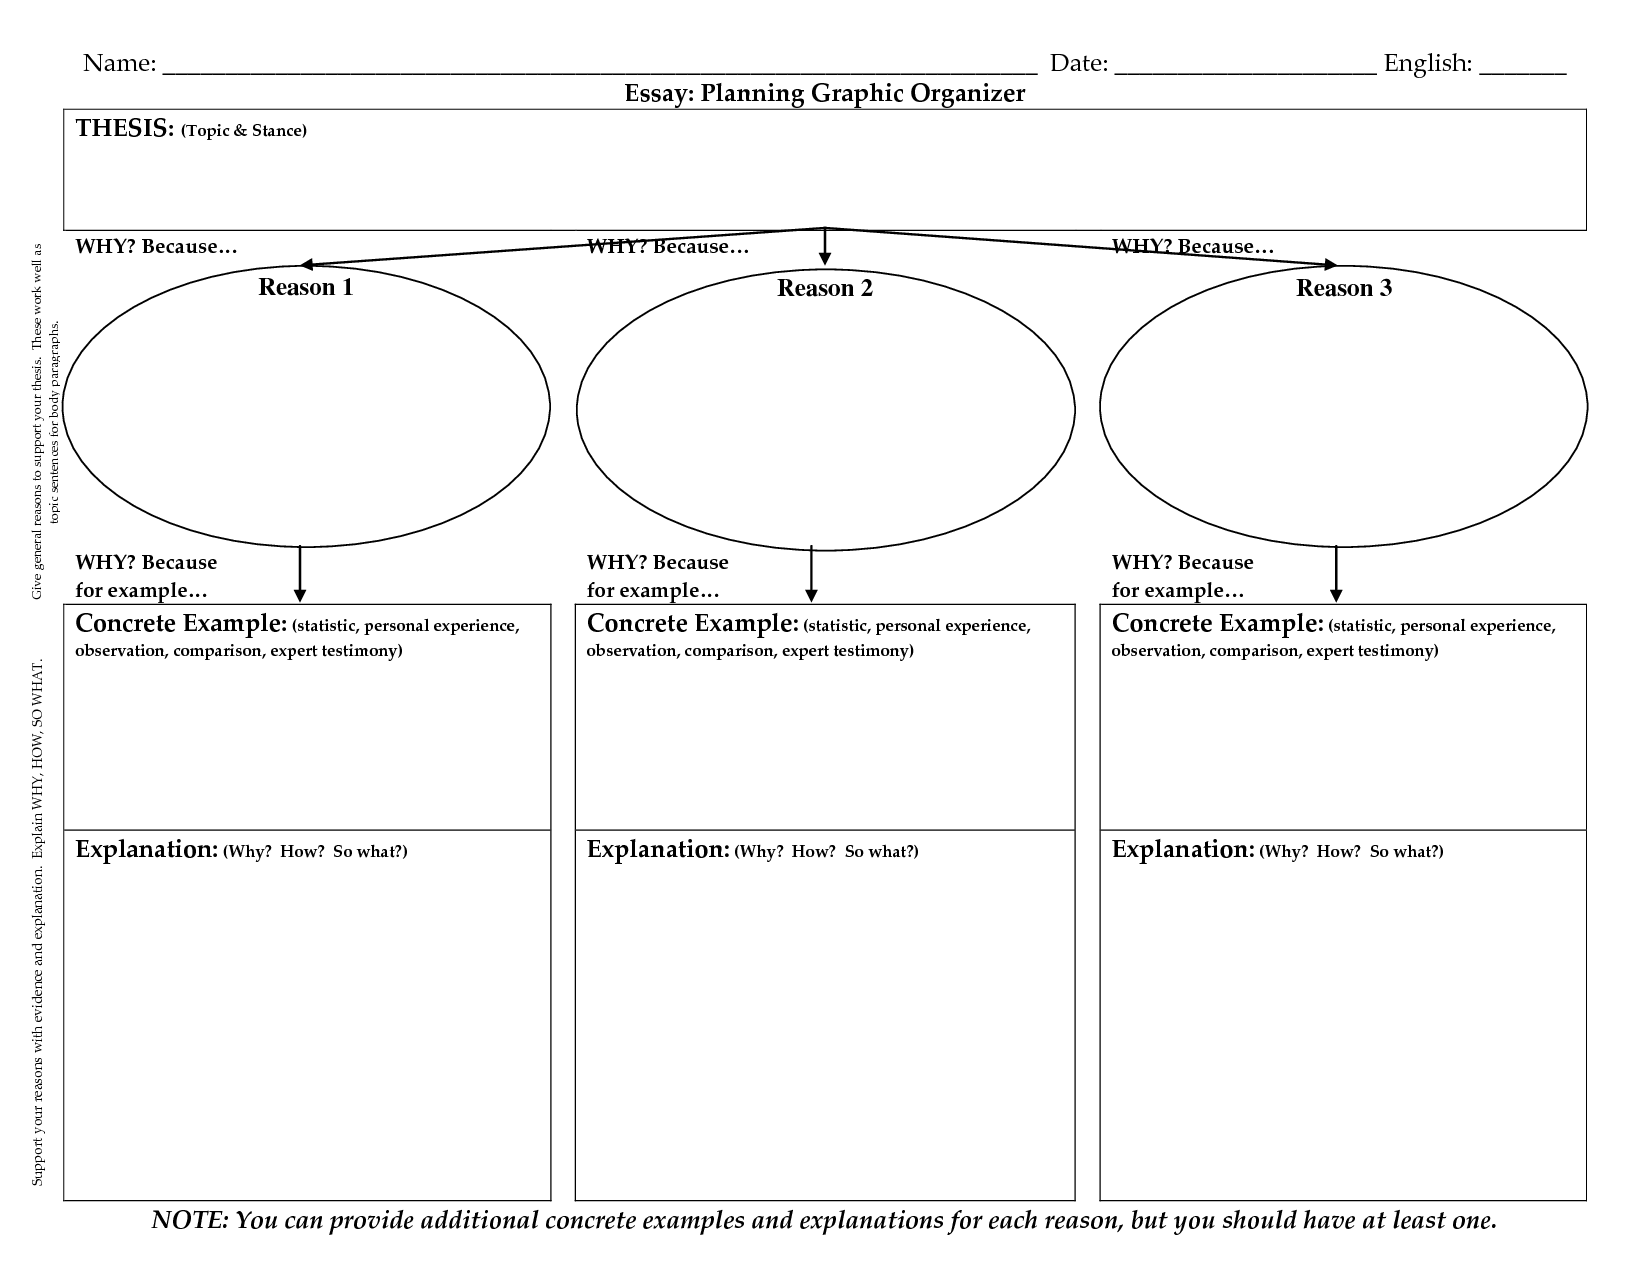 essay writing graphic organizer education paper 15 best images of argument writing graphic organizers brainstorming argument writing graphic organizer paragraph essay graphic organizer and persuasive